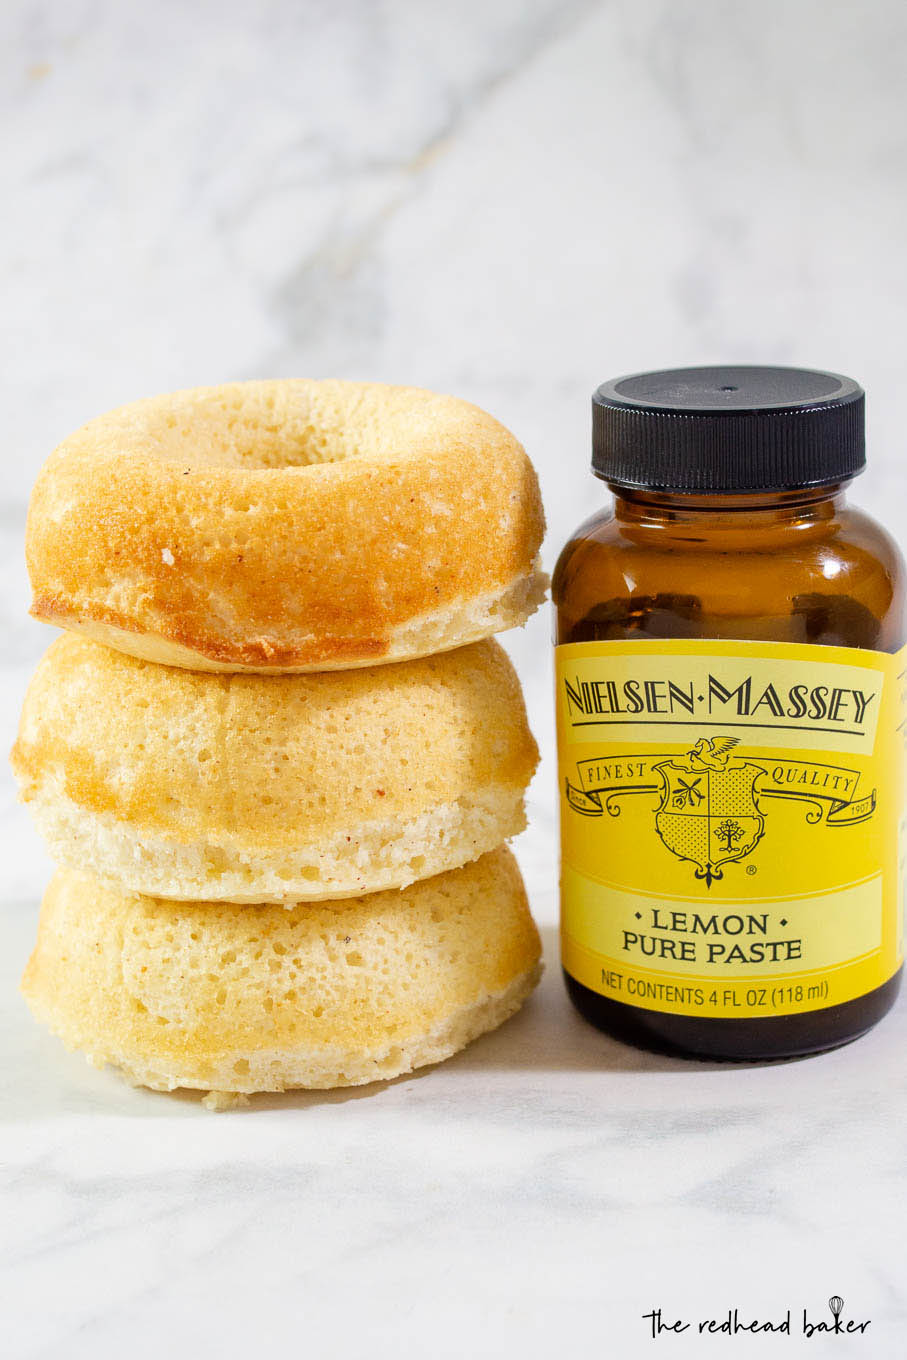 A stack of three baked lemon donuts next to a jar of Nielsen-Massey lemon paste